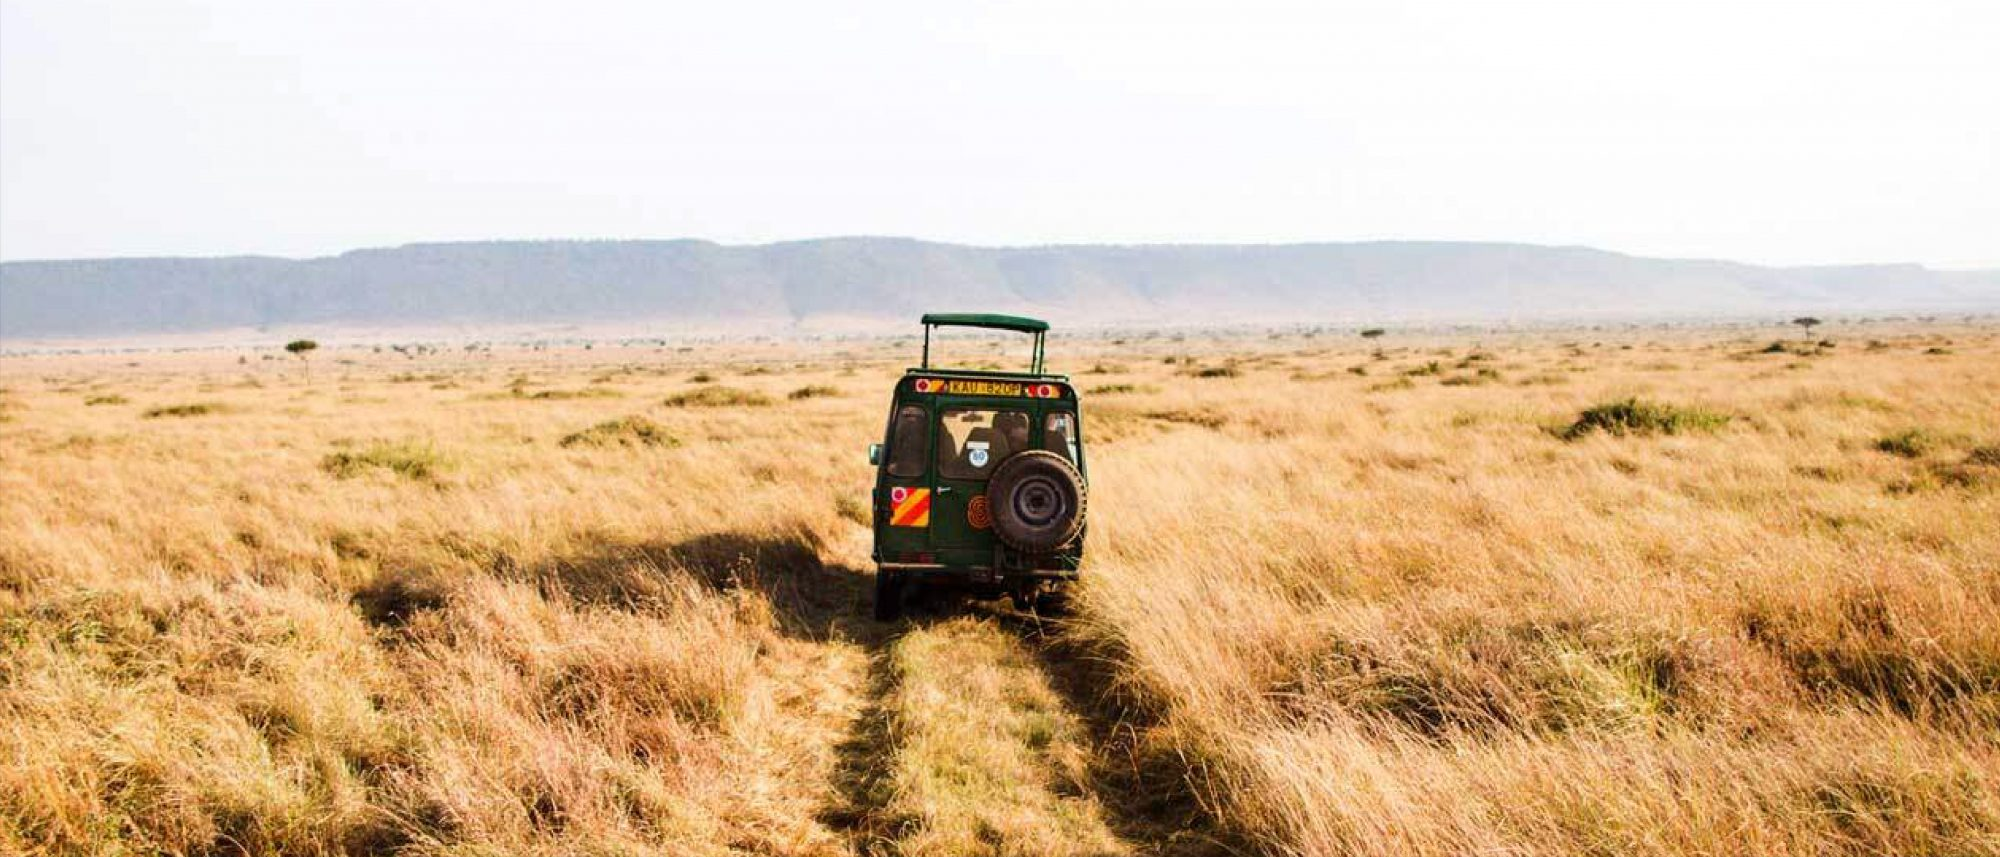 The Masai Mara located in Kenya.